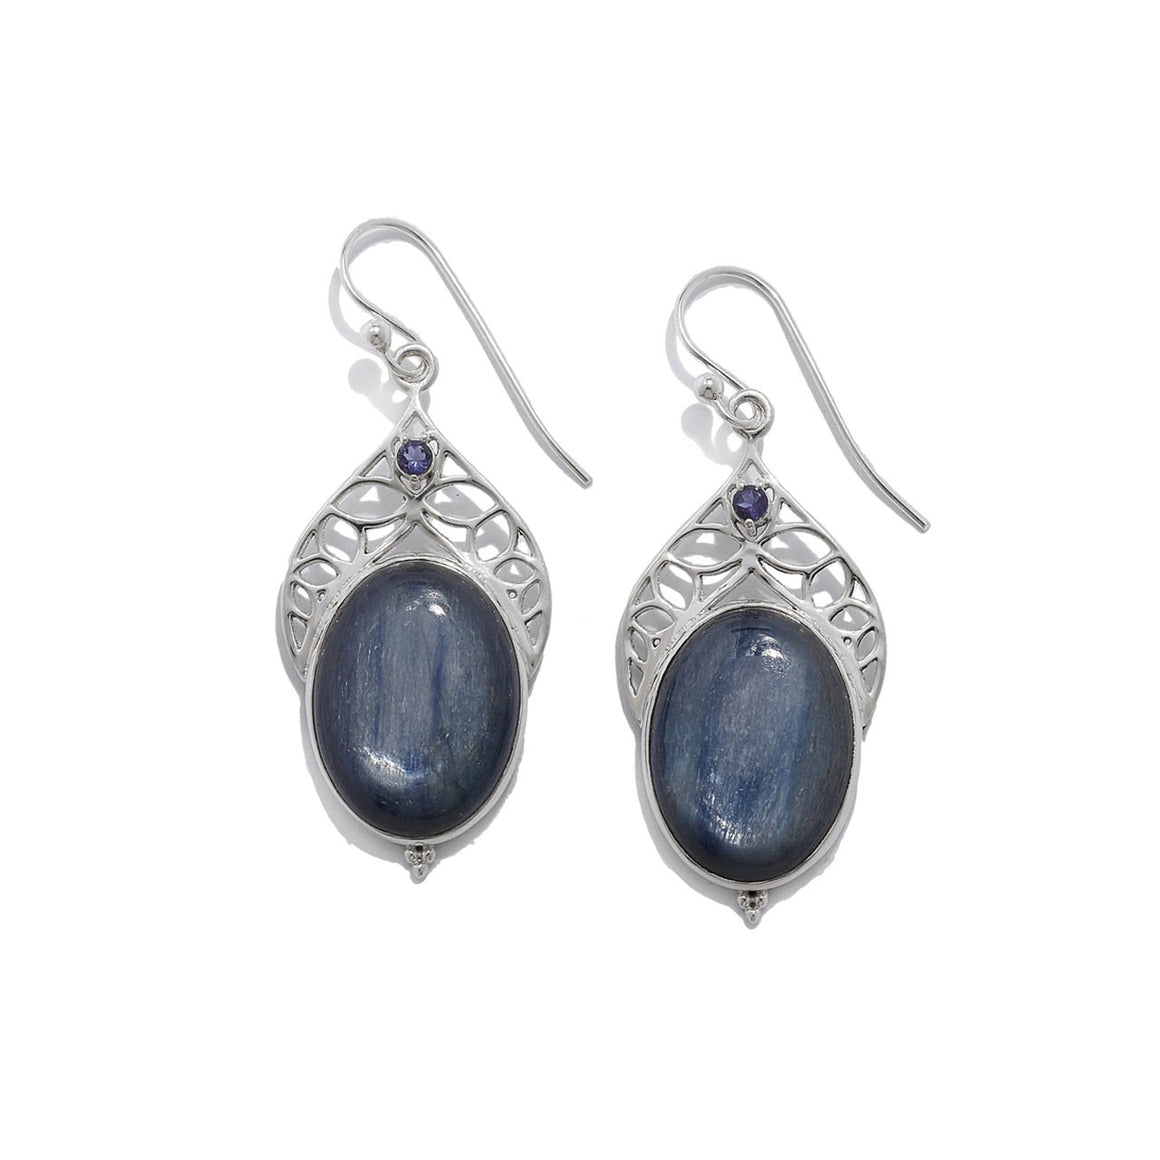 Kyanite and Iolite Earrings